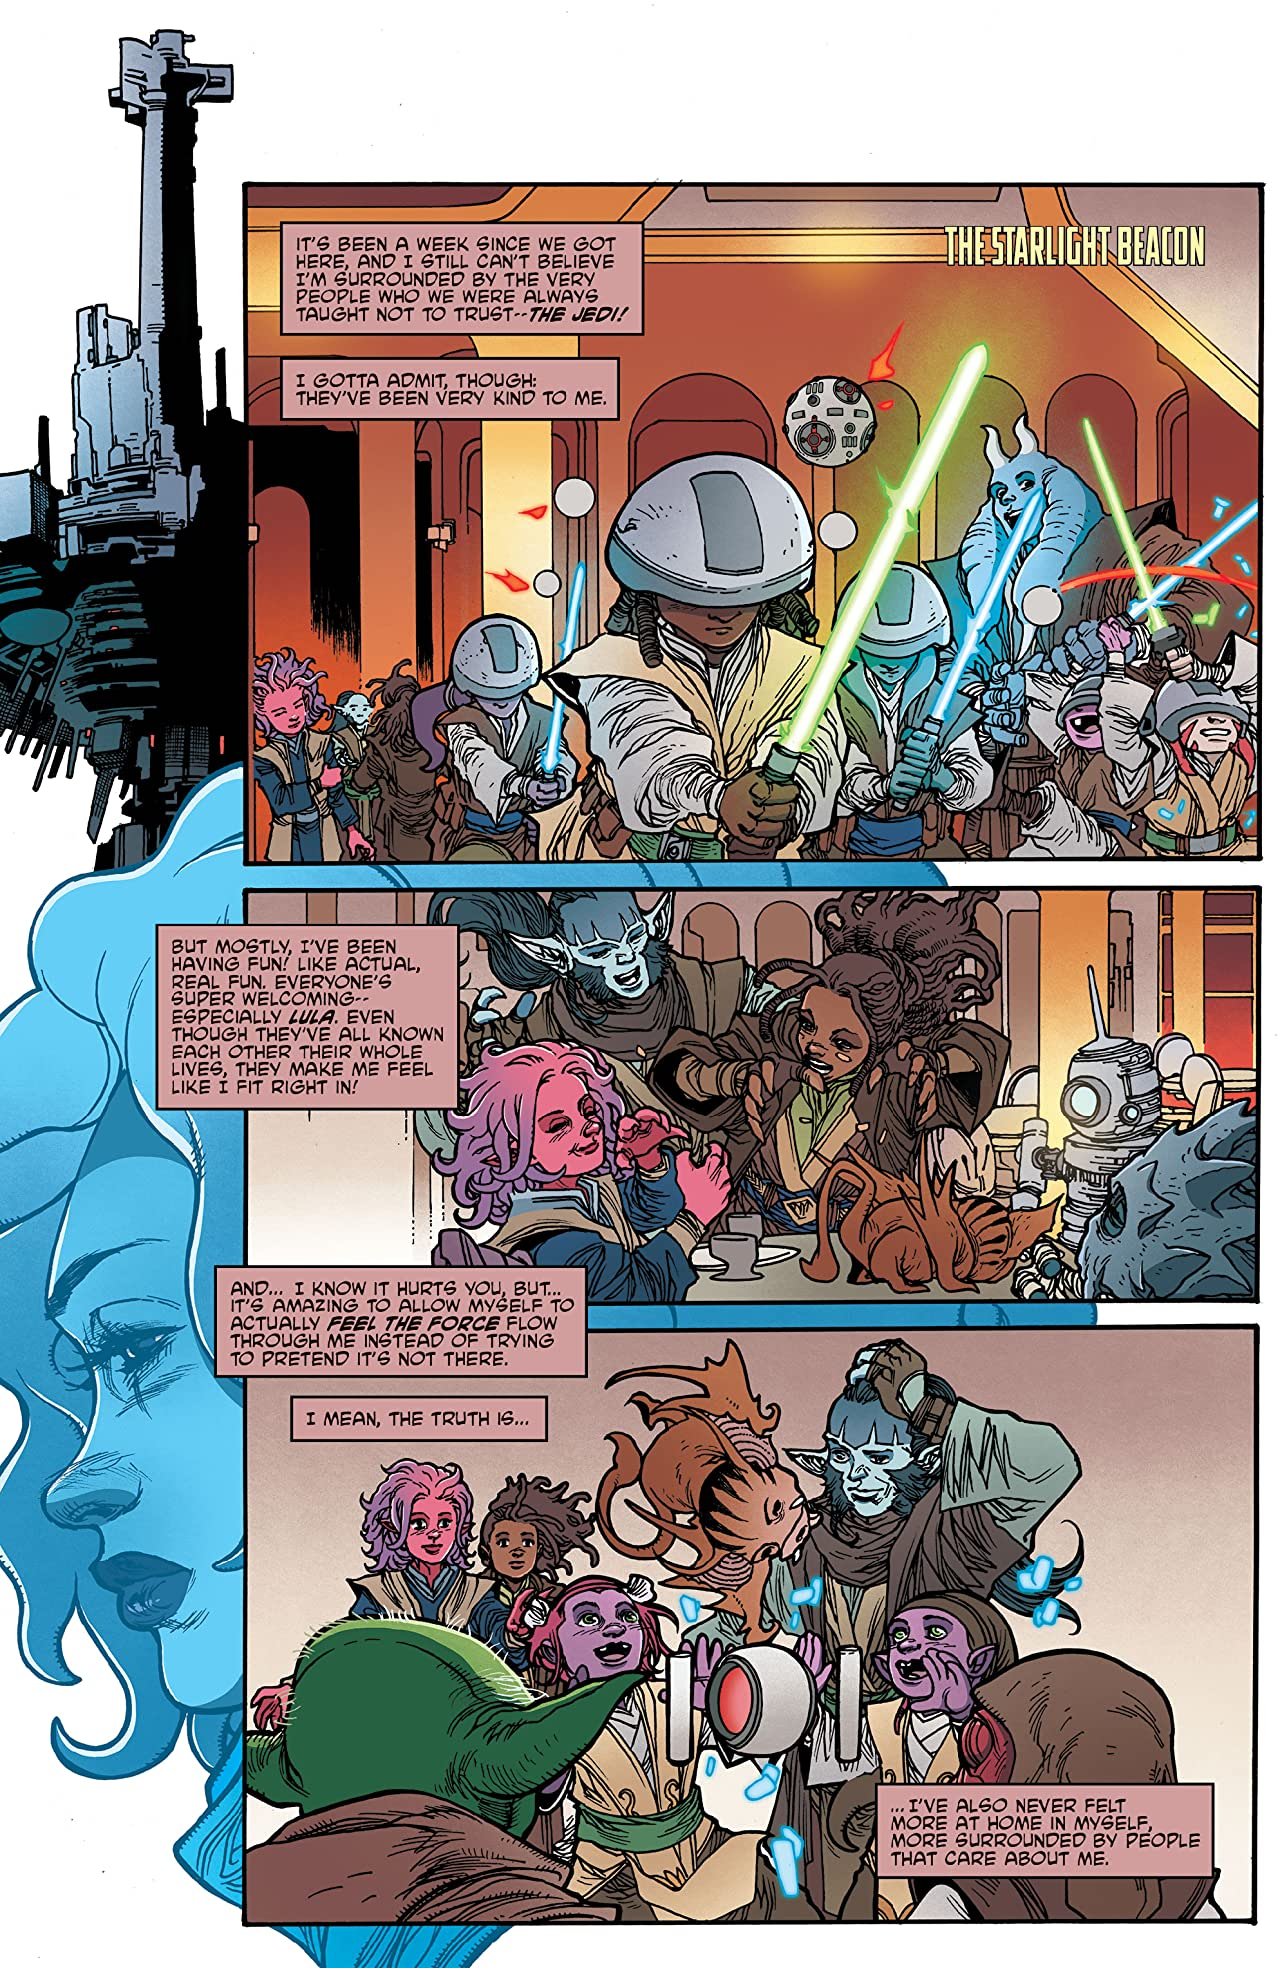 Star Wars: The High Republic Adventures #3